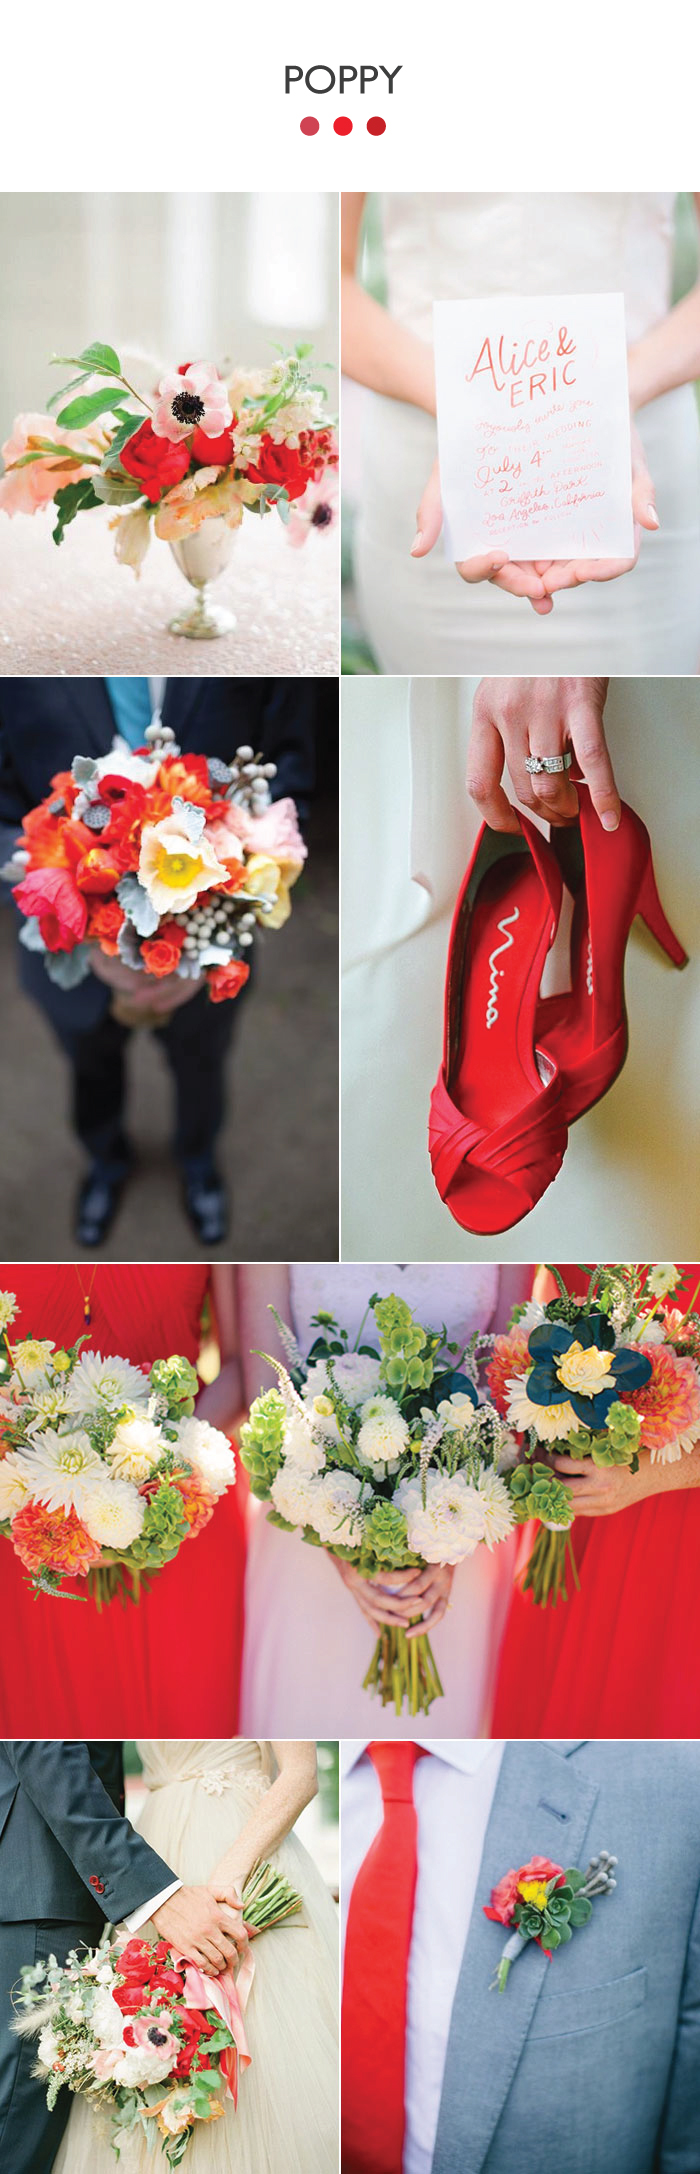 Poppy Wedding Color Board